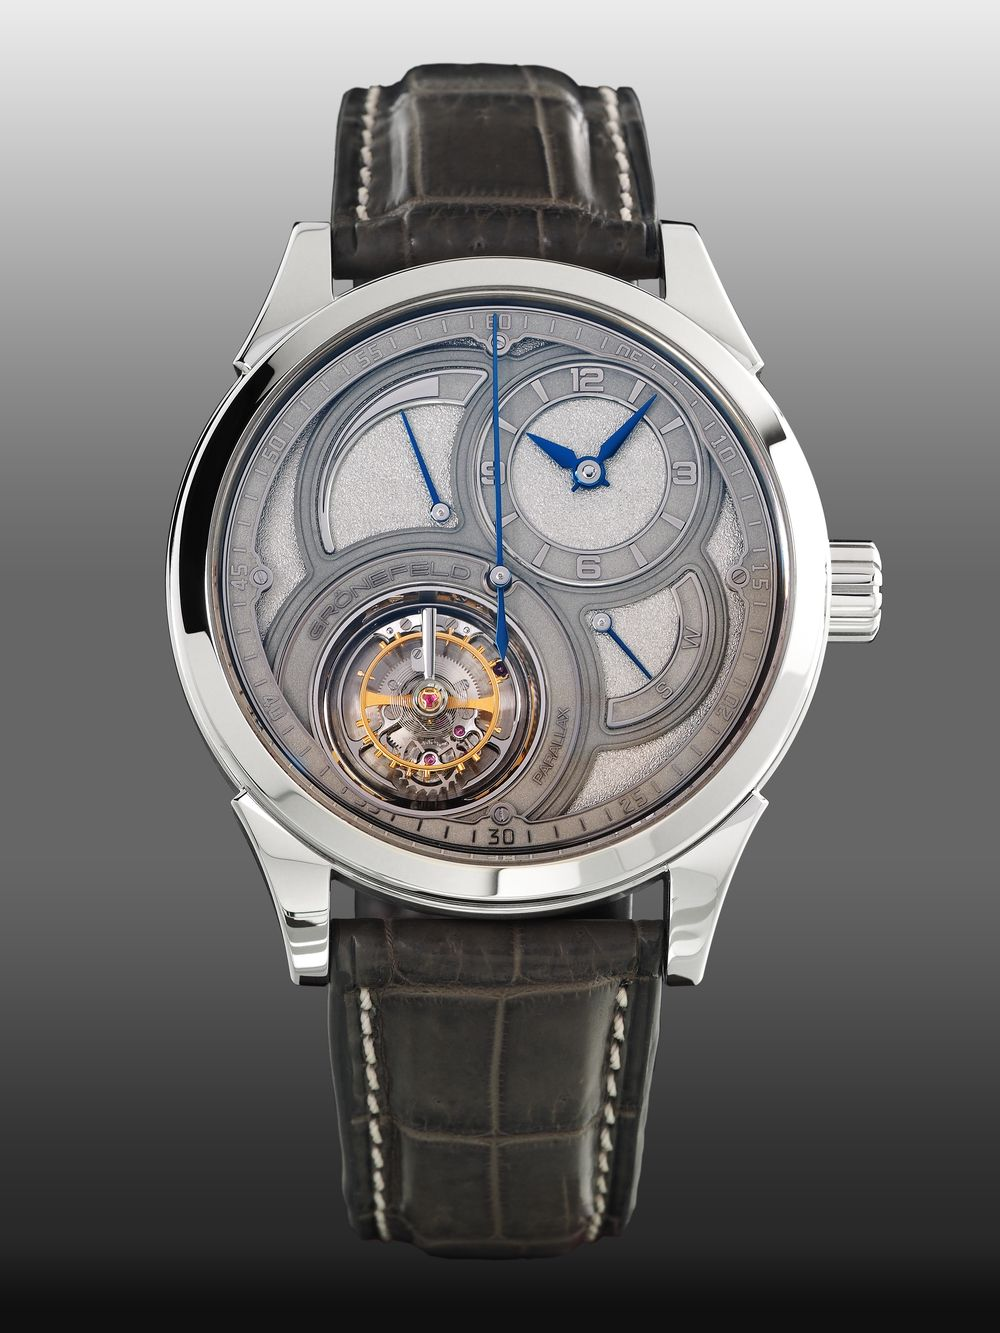 30f1c34f575 The Grönefeld Parallax Tourbillon Gets Updated with a New Dial ...